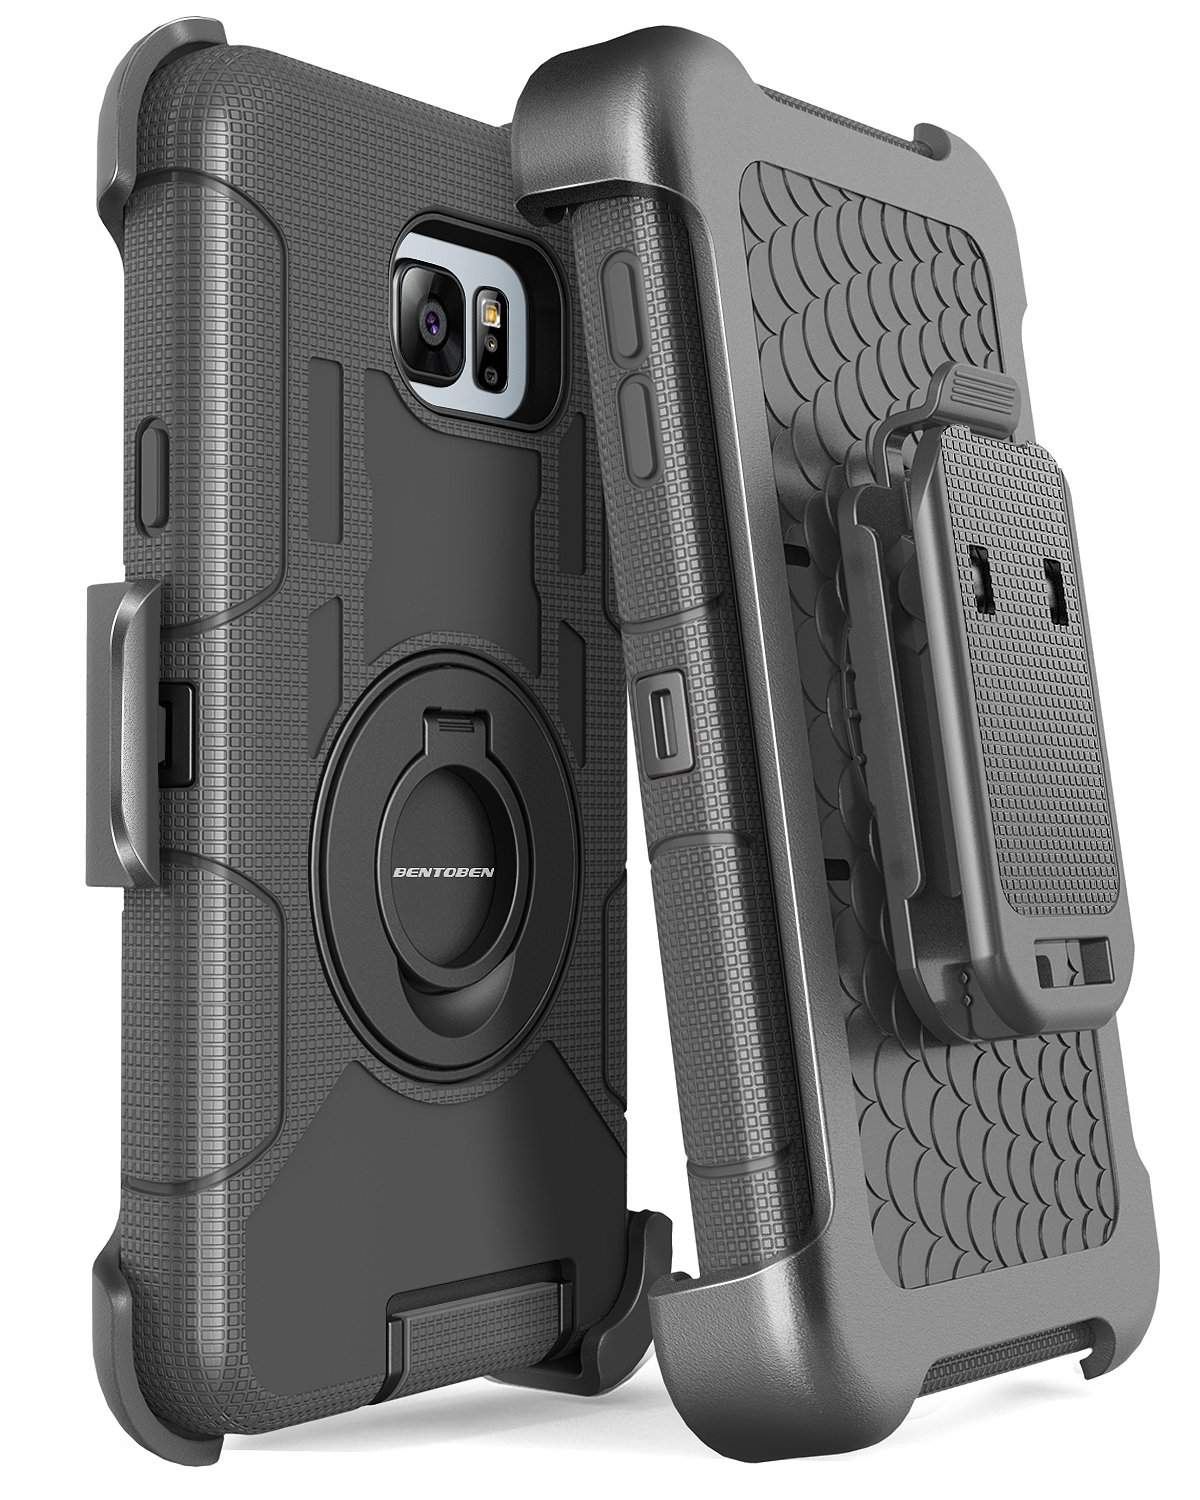 Note 5 Case, Galaxy Note 5 Case, BENTOBEN Samsung Galaxy Note 5 Case Shockproof Heavy Duty Hybrid Full Body Rugged Holster Protective Case for Samsung Galaxy Note 5 with Kickstand + Belt Clip (Black) by BENTOBEN